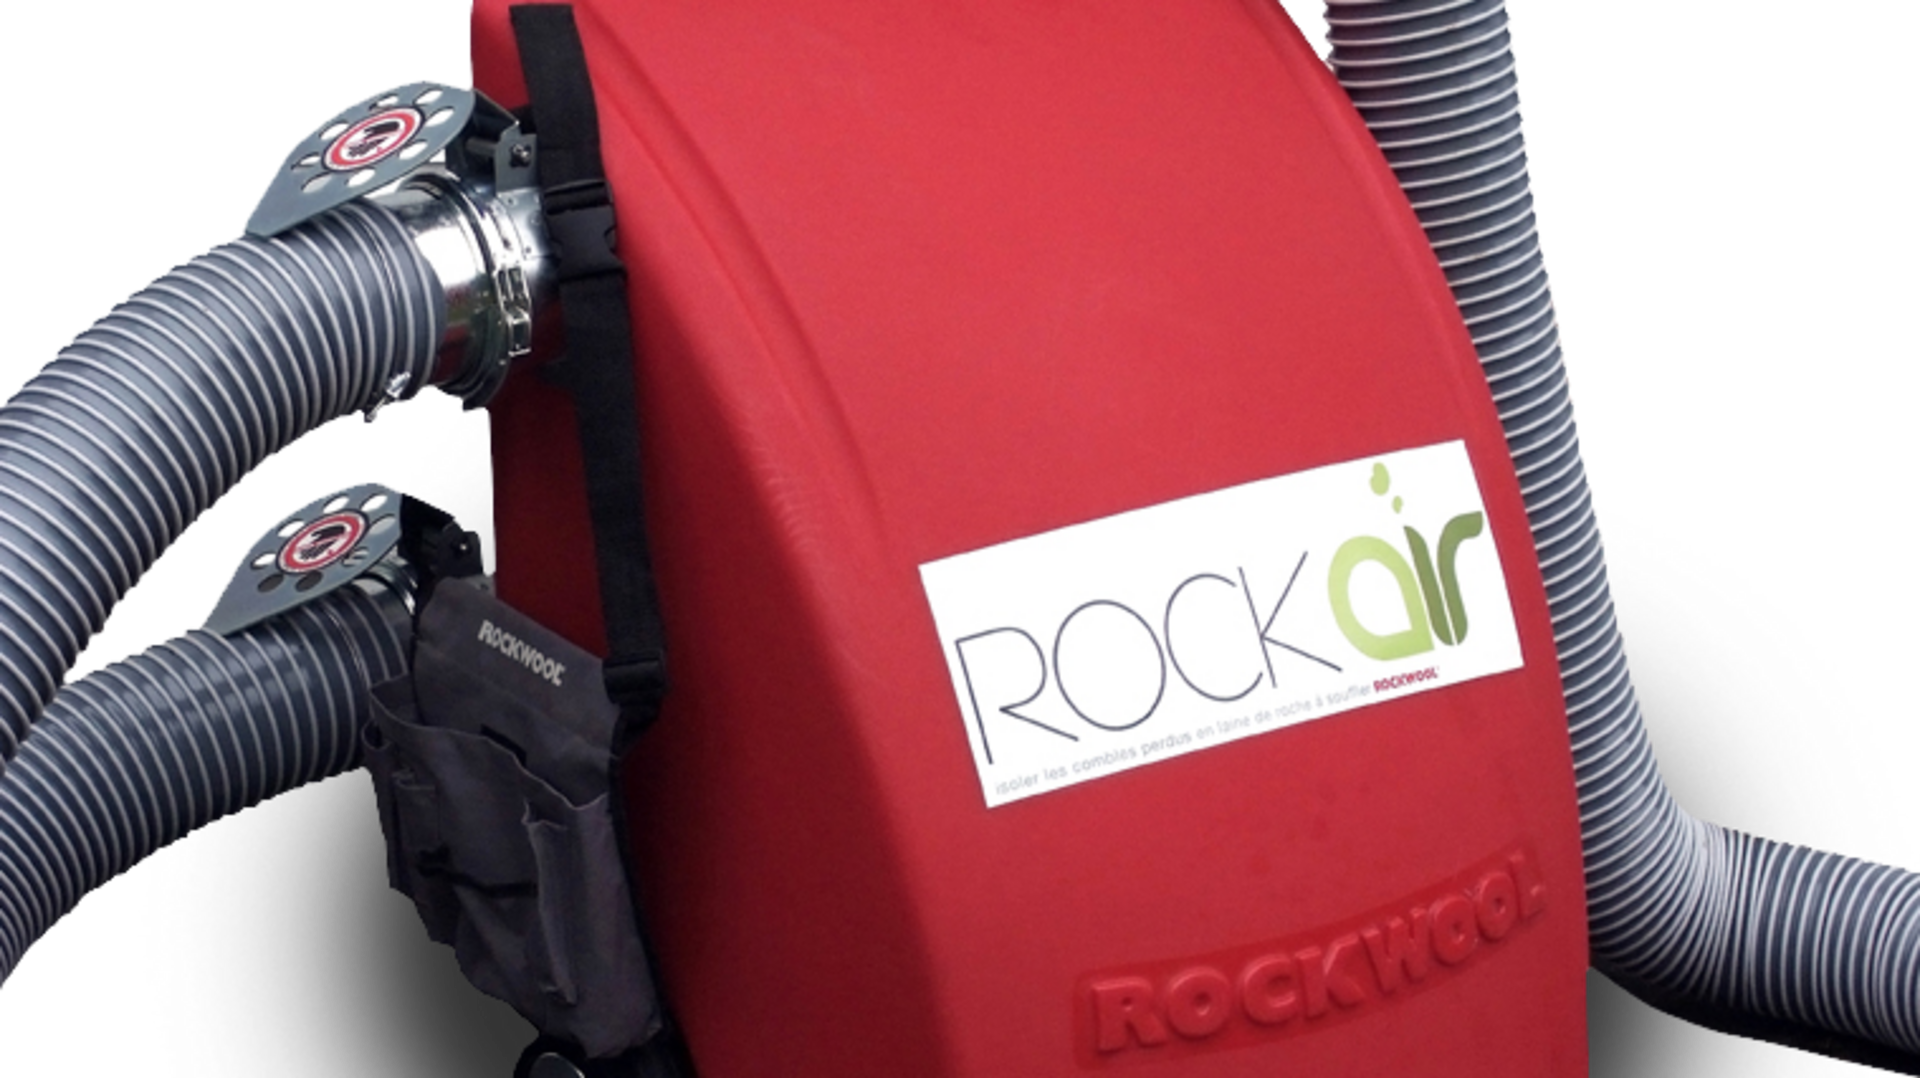 ROCKAIR_Machine à souffler